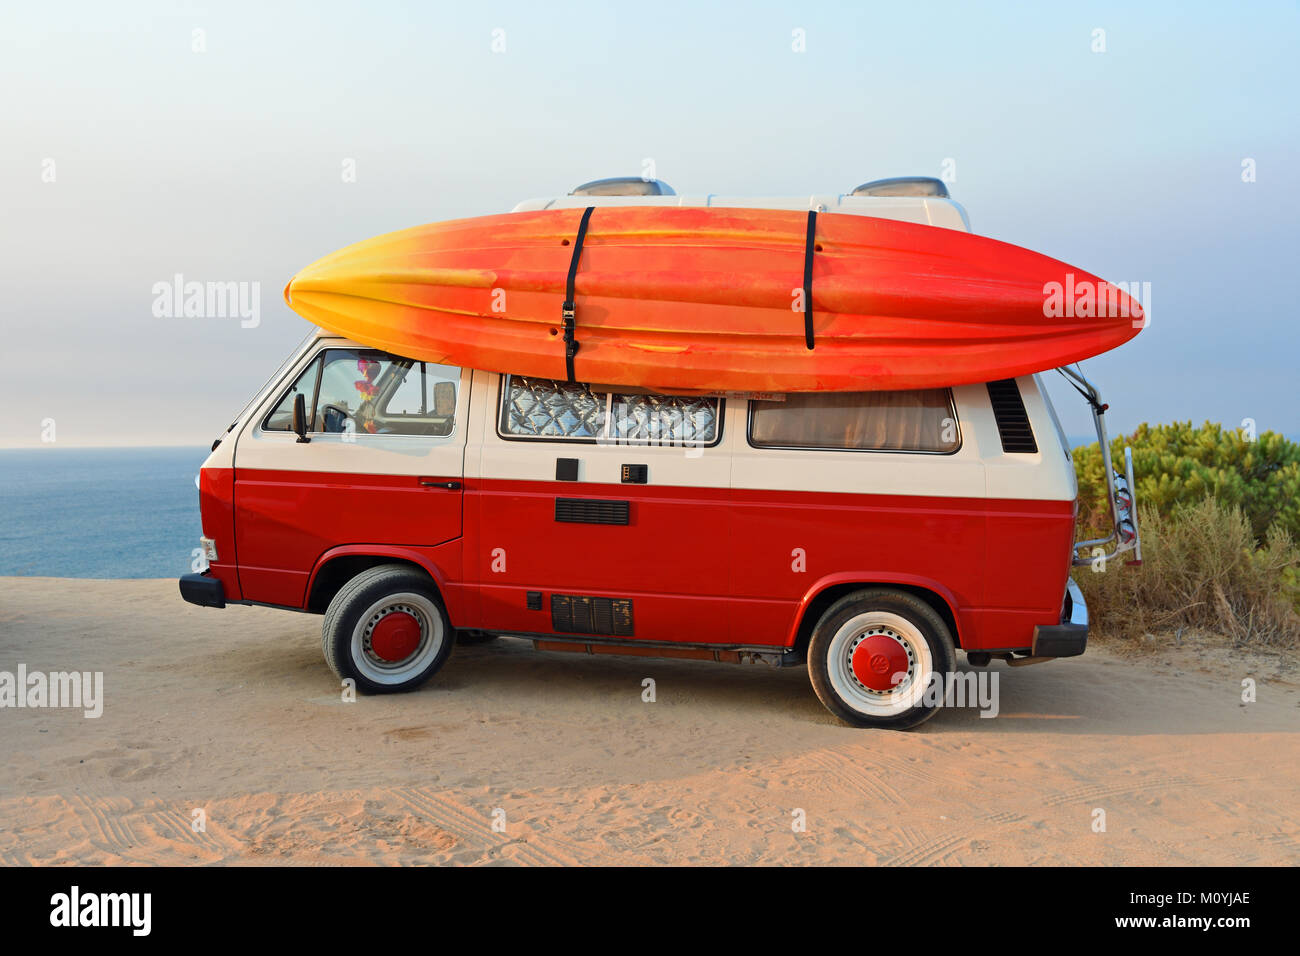 VW bus with kayak at Praia da Marinha,South Coast,Algarve,Portugal - Stock Image